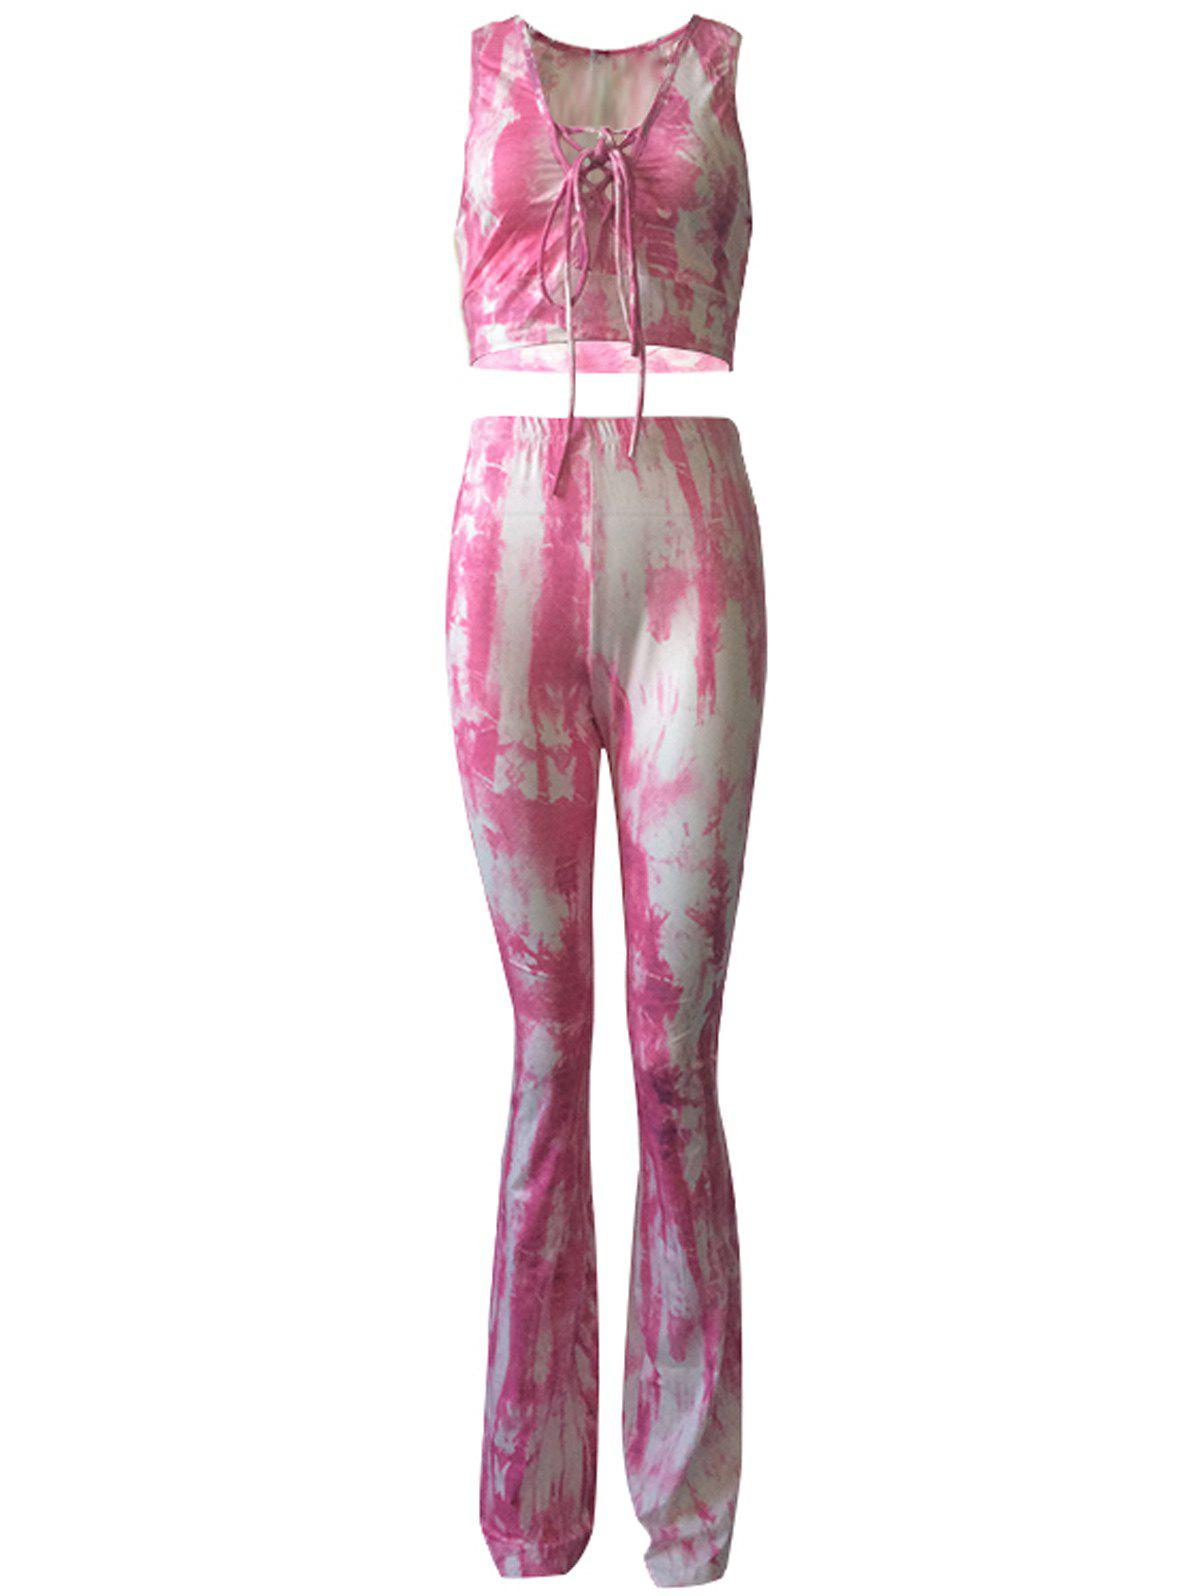 Casual Lace Up Tank Top and Tie Dye Pants Set For Women - SHALLOW PINK 3XL